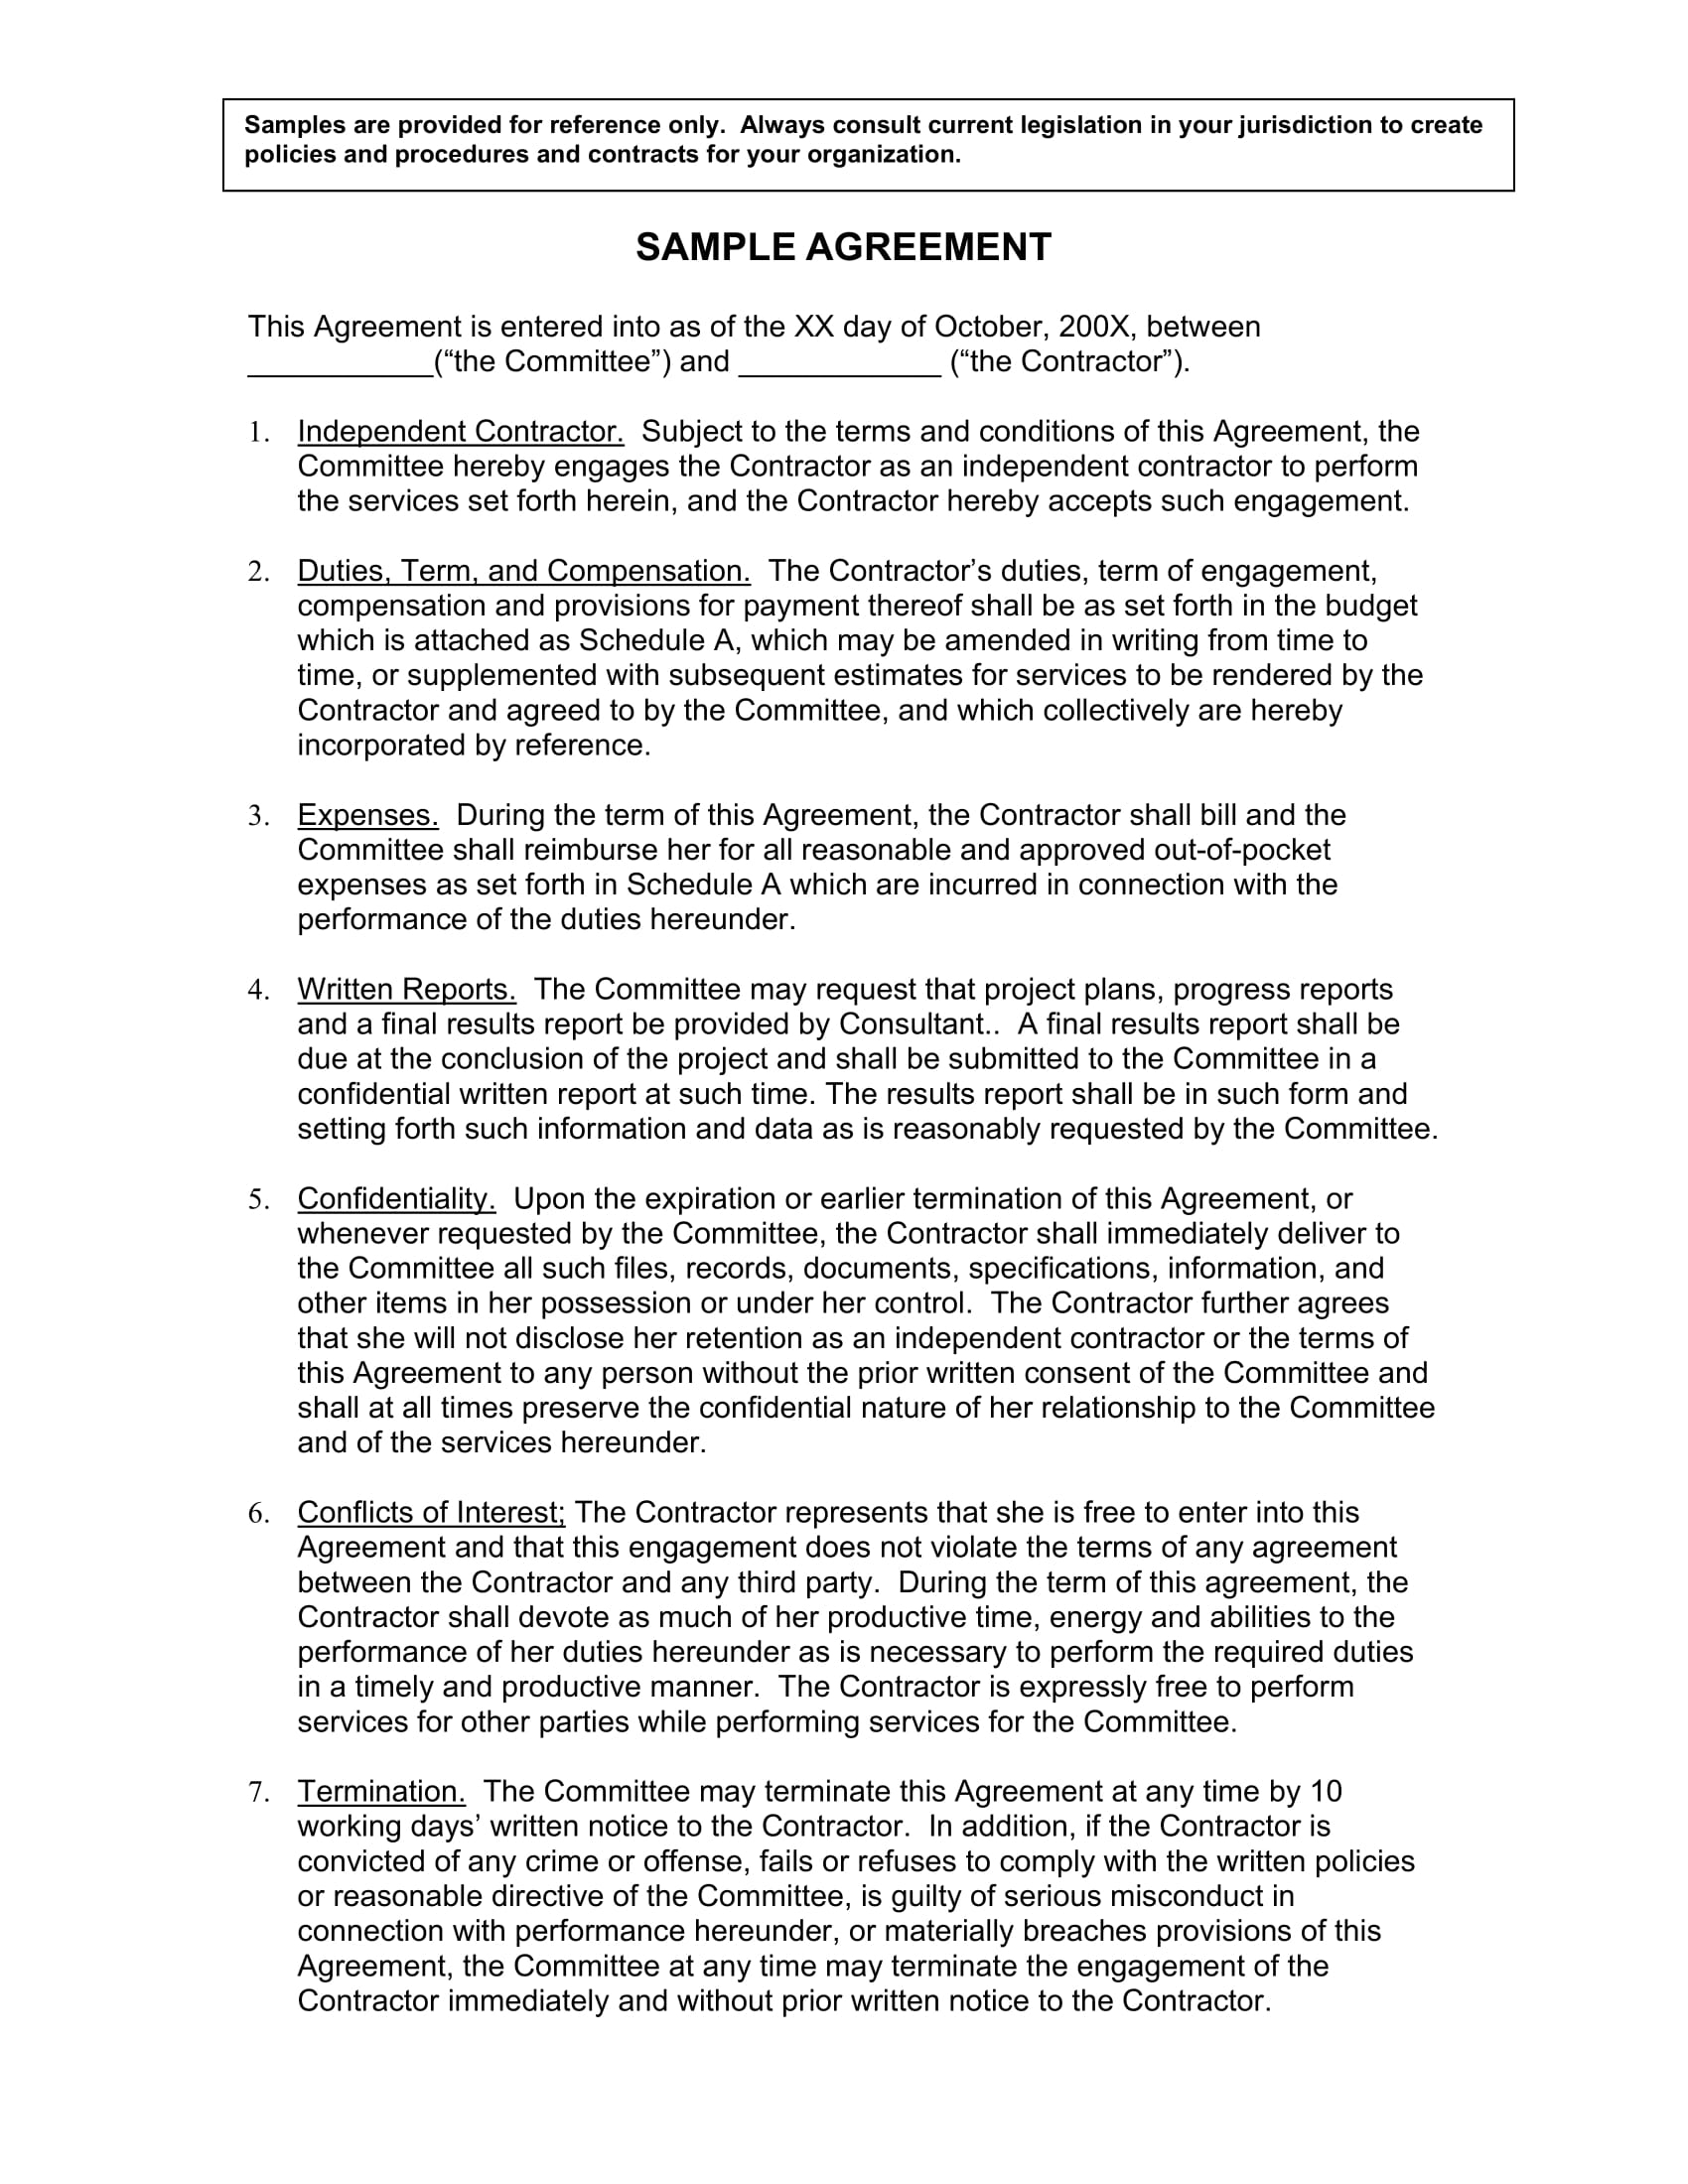 sample agreement template for a moving company contract example 1